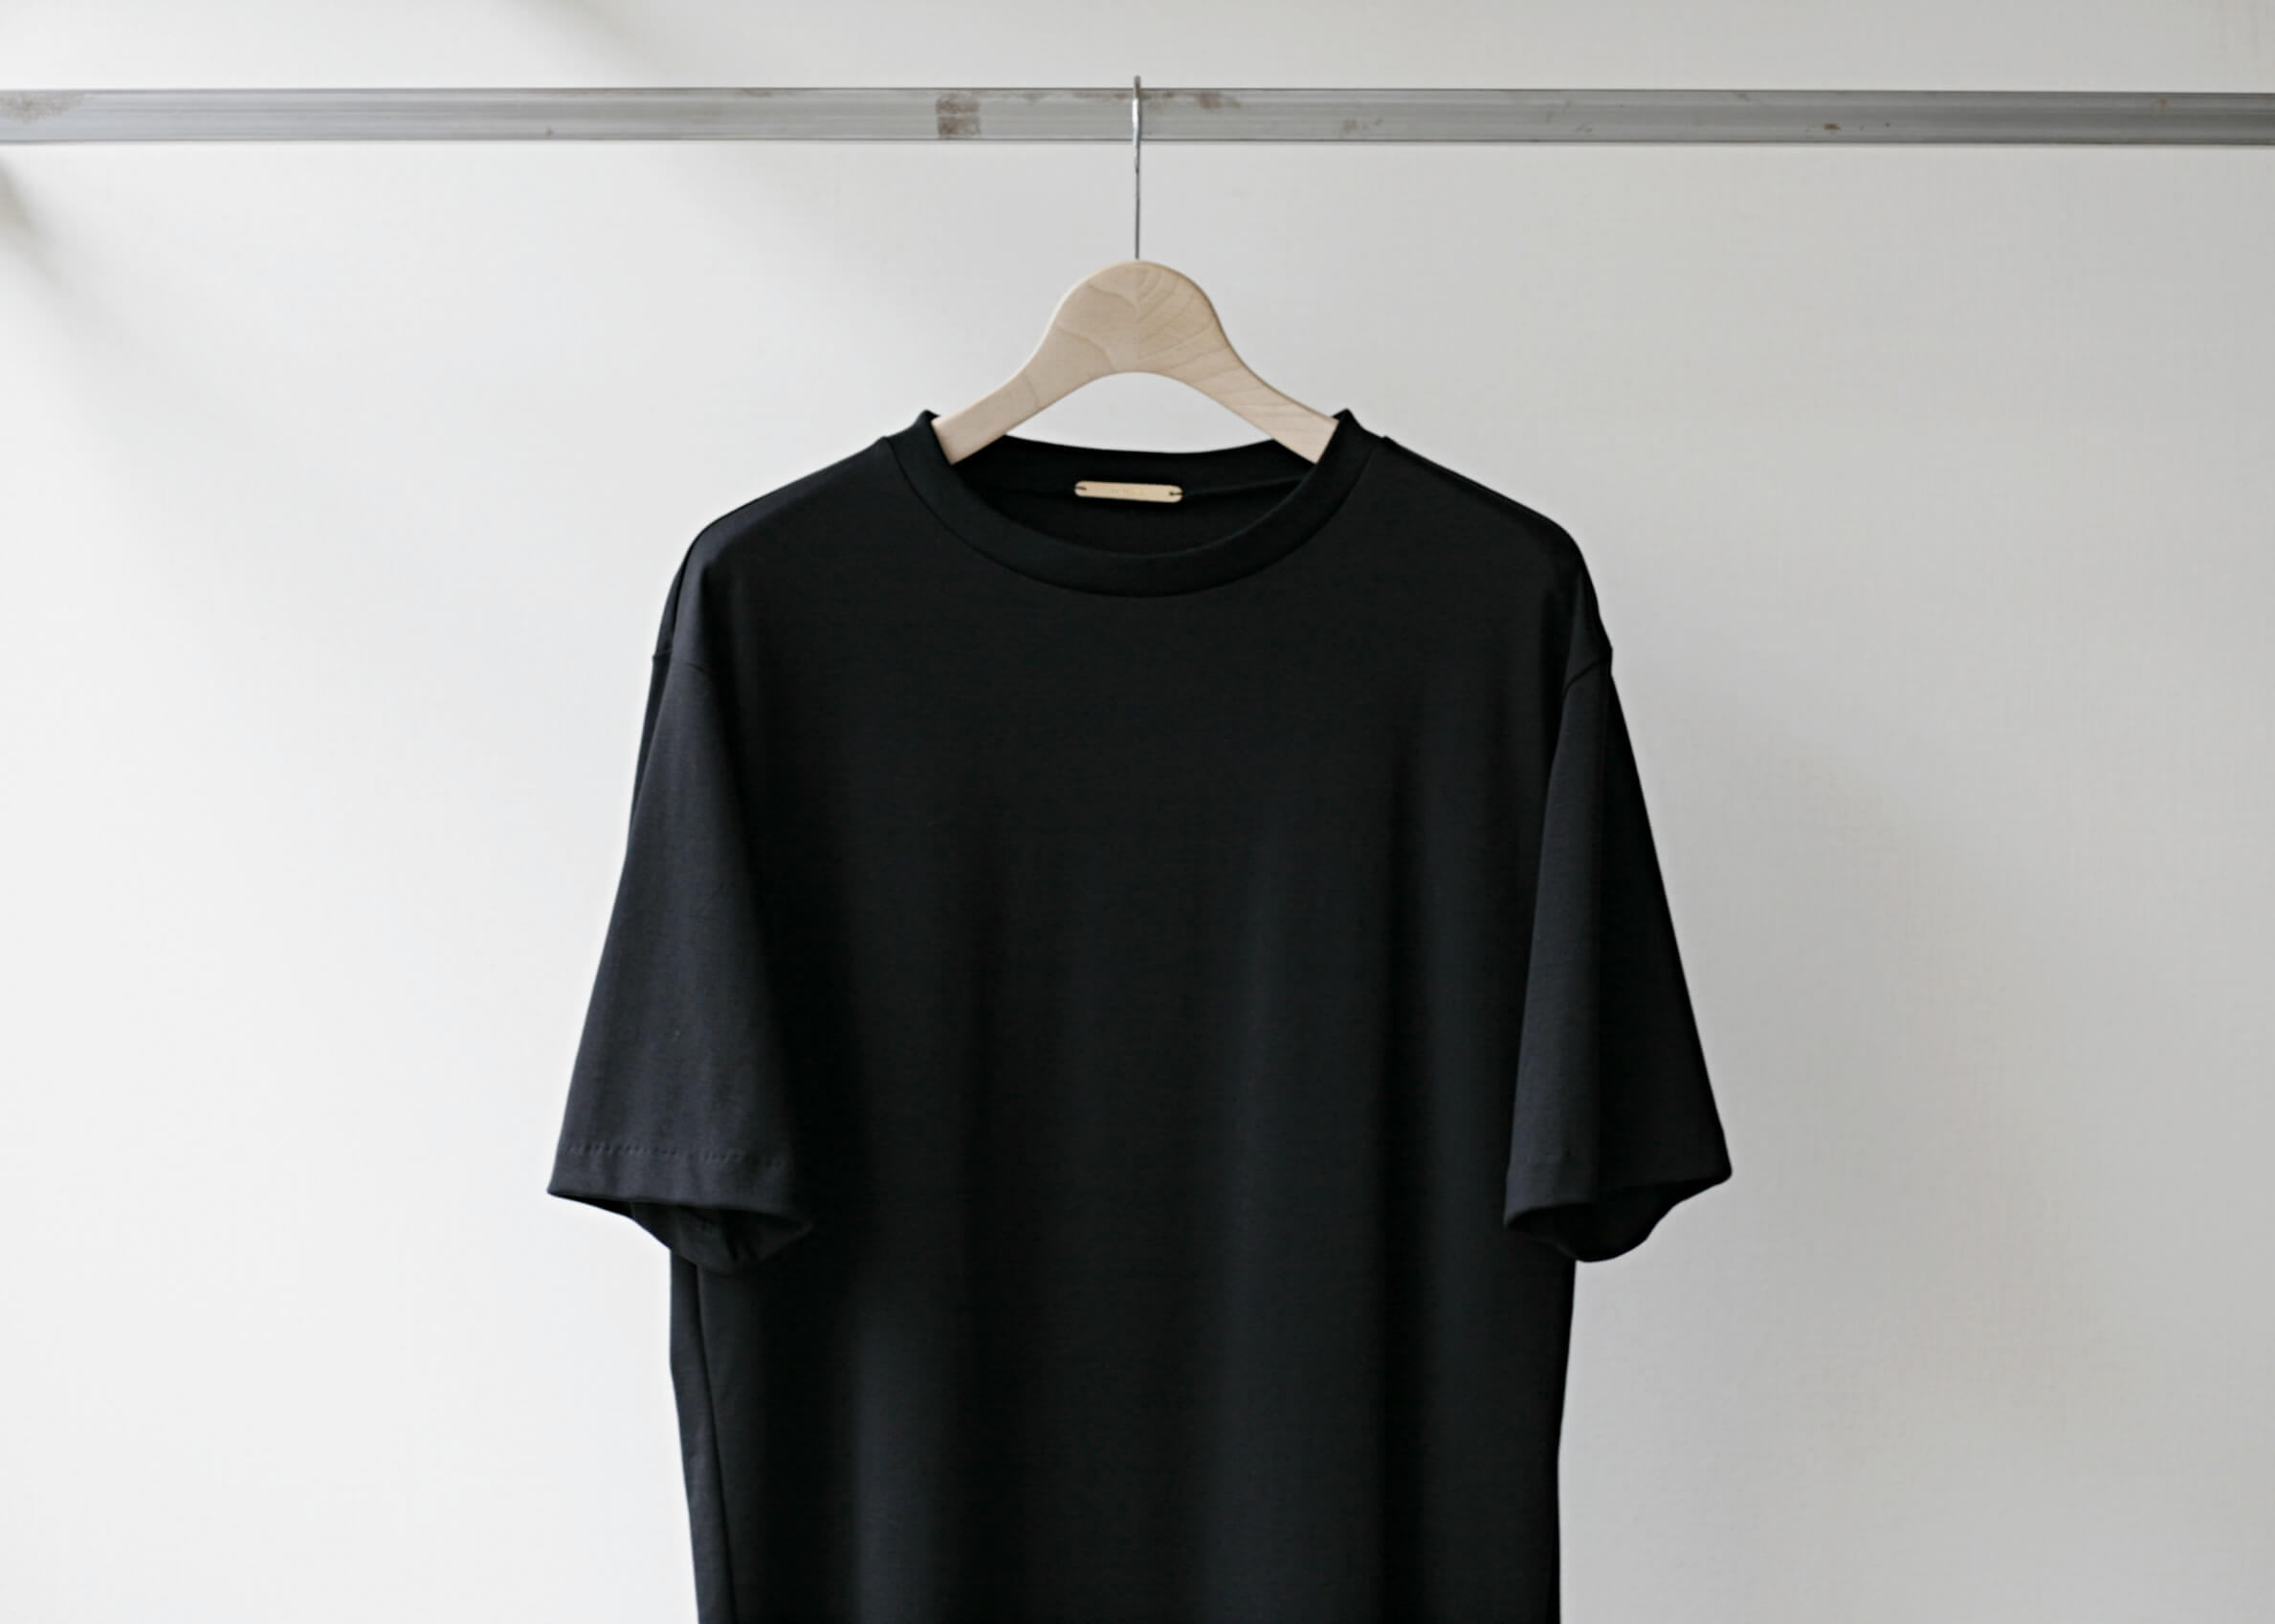 lamond suvin cotton s/s black 正面上半身アップ